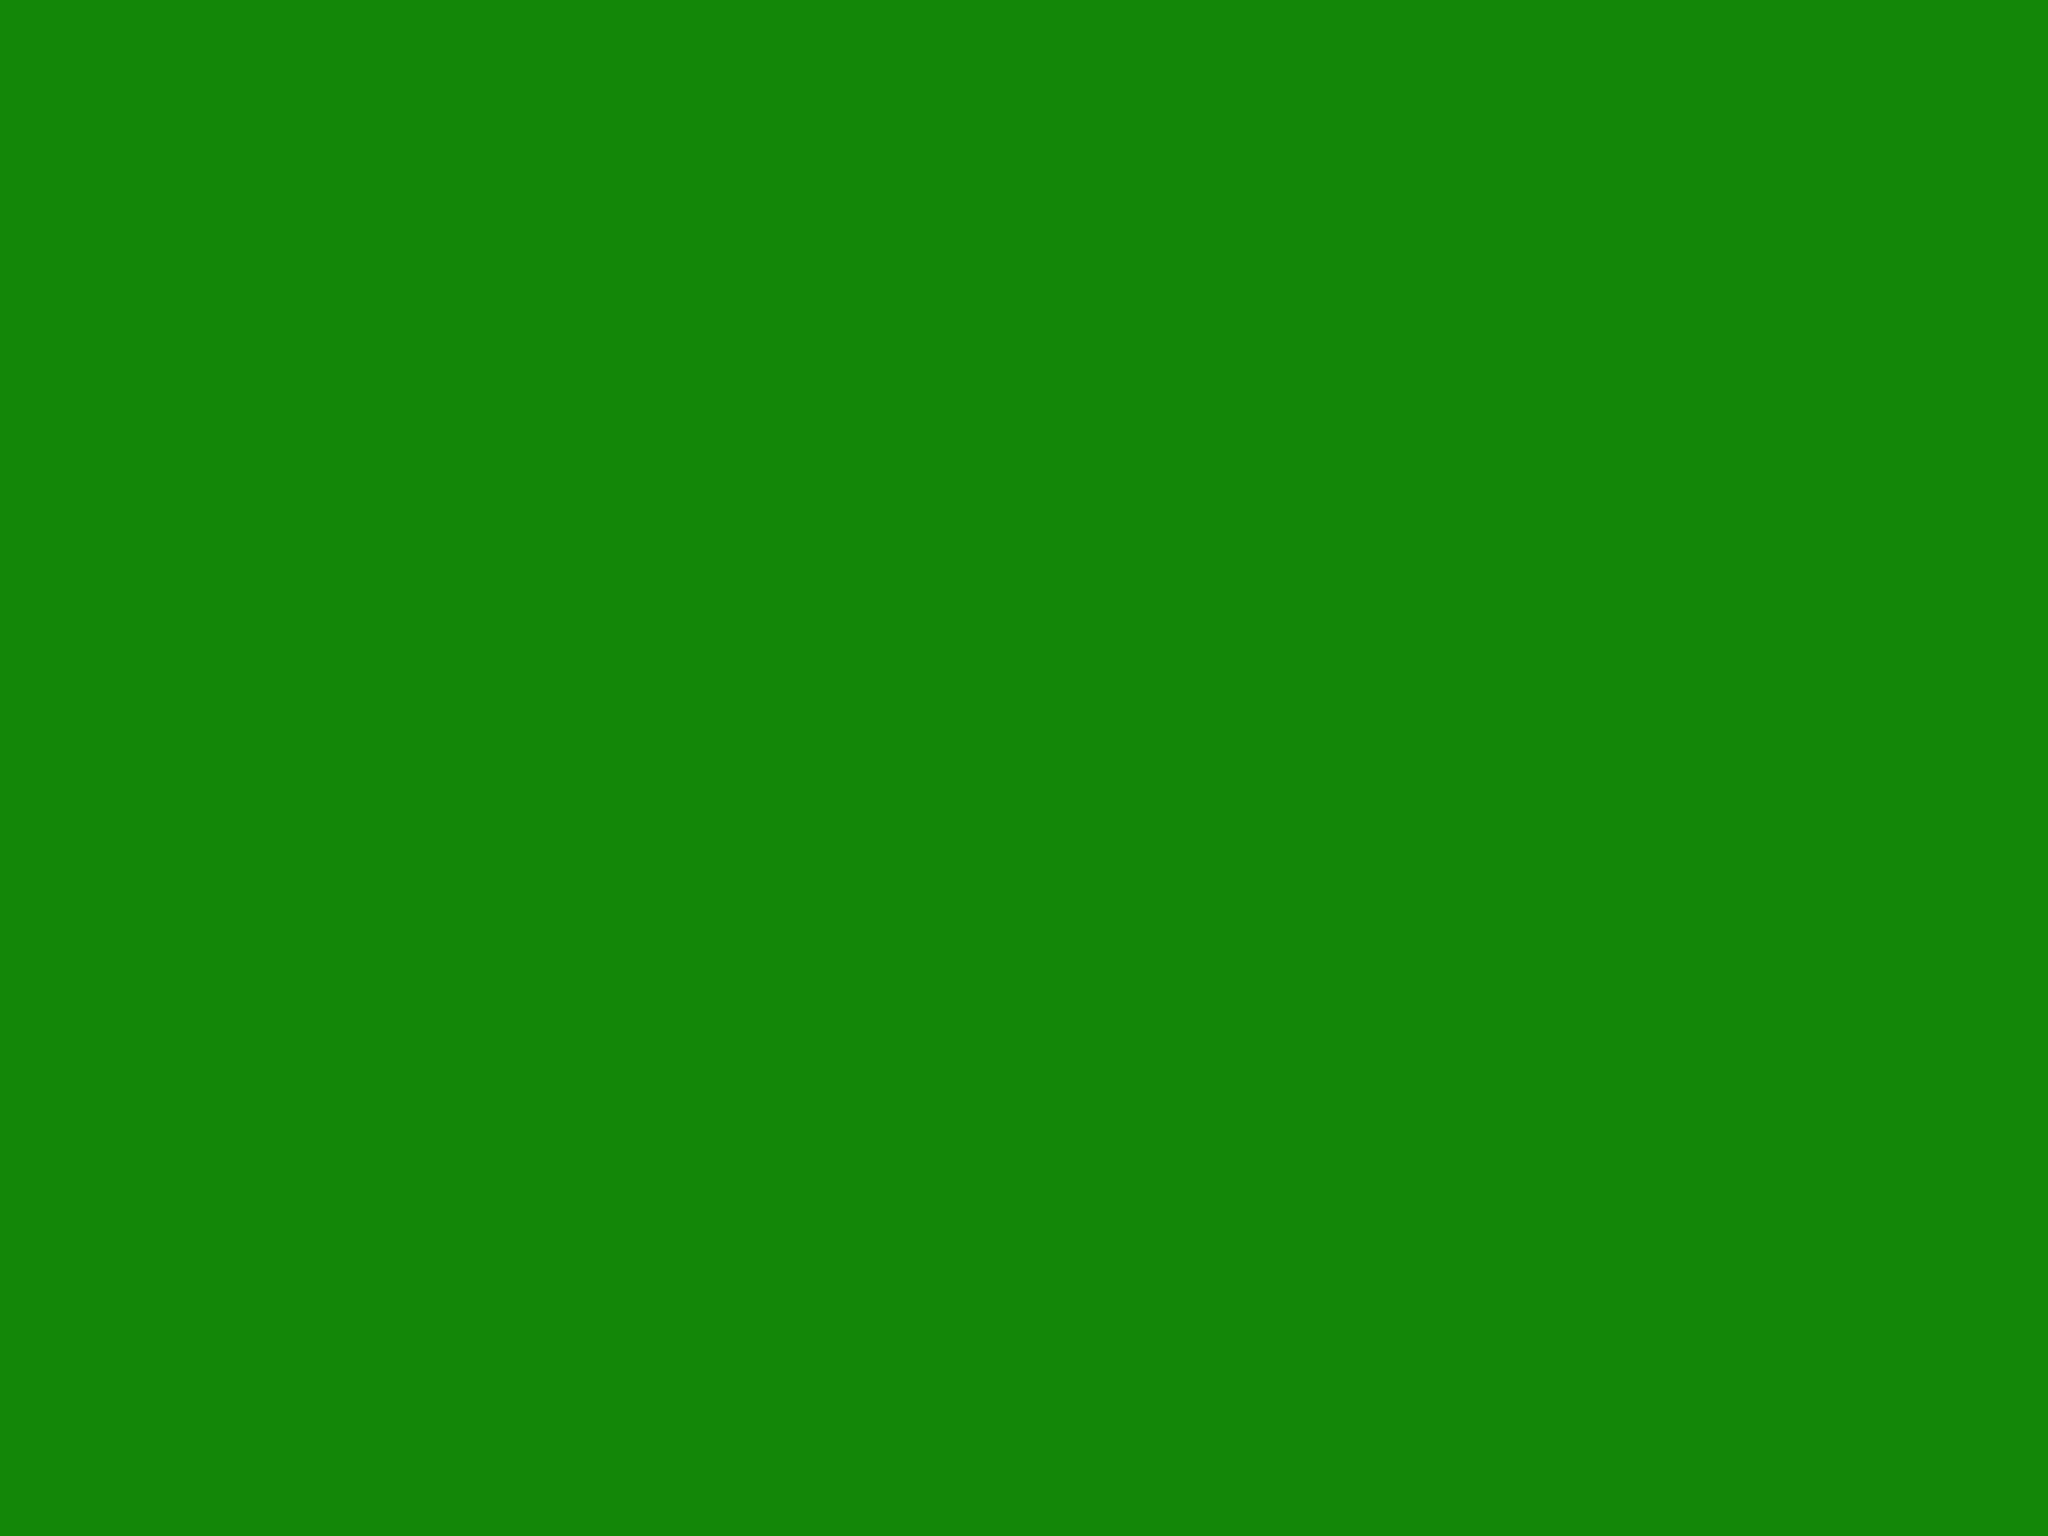 2048x1536 India Green Solid Color Background